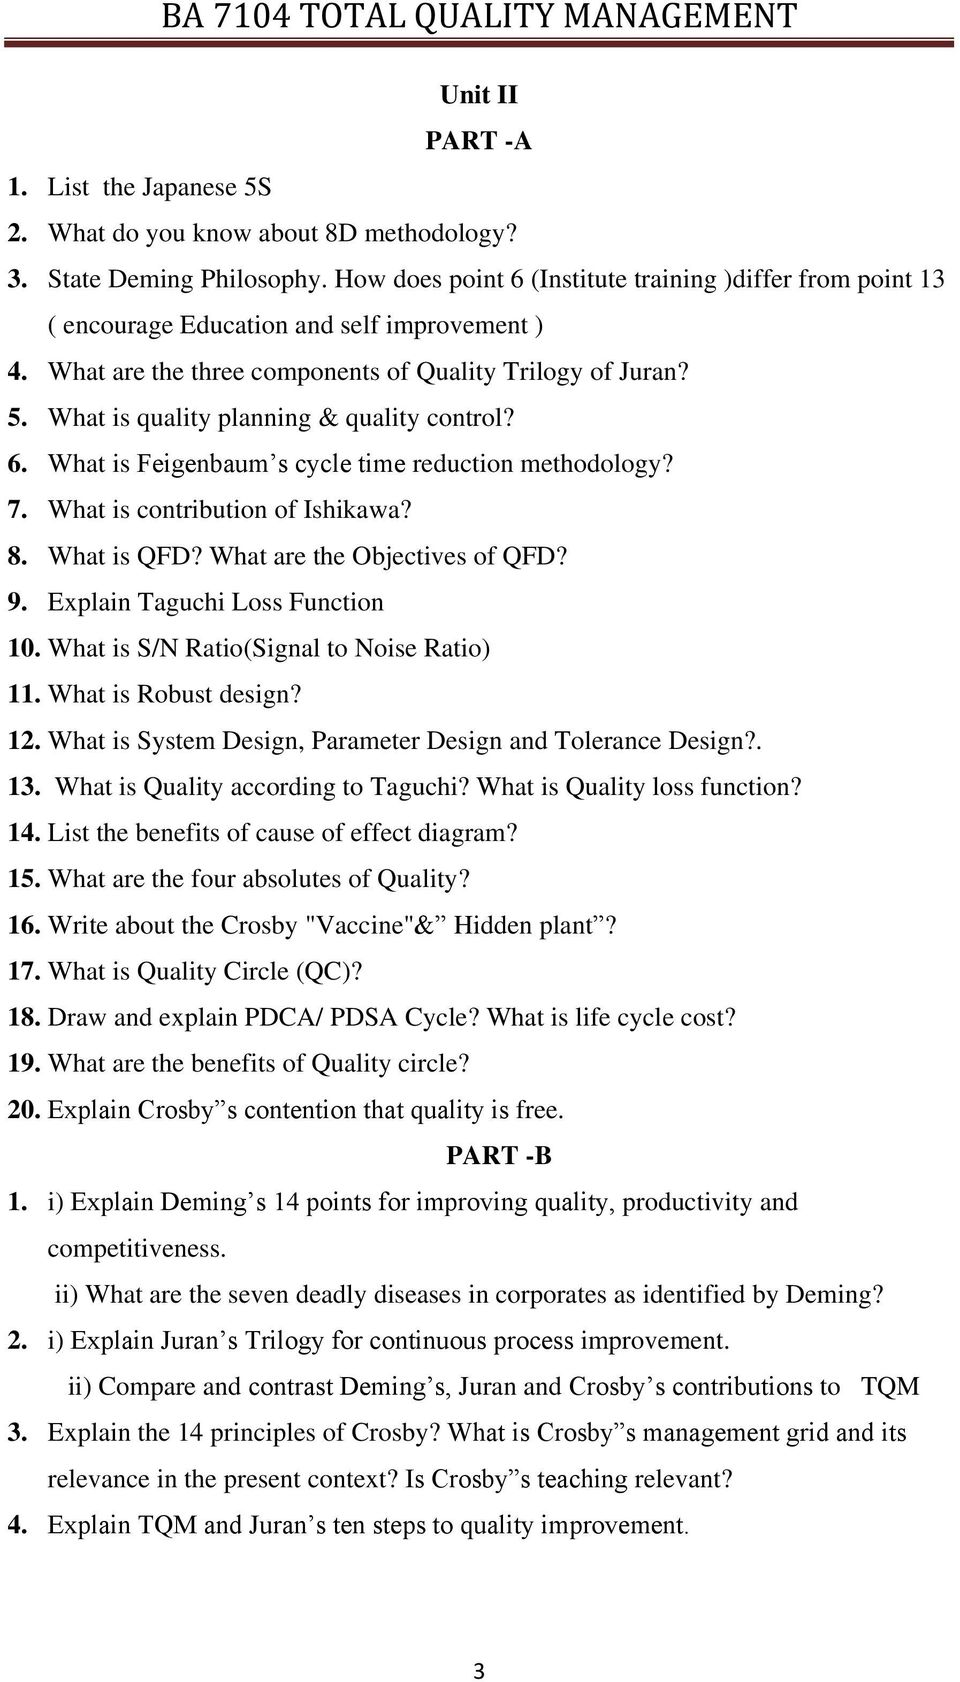 compare and contrast quality philosophies of deming and juran Deming vs juran vs crosby three commonly cited quality management theorists quoted on the exam are: w edwards deming, joseph juran, and philip crosby.